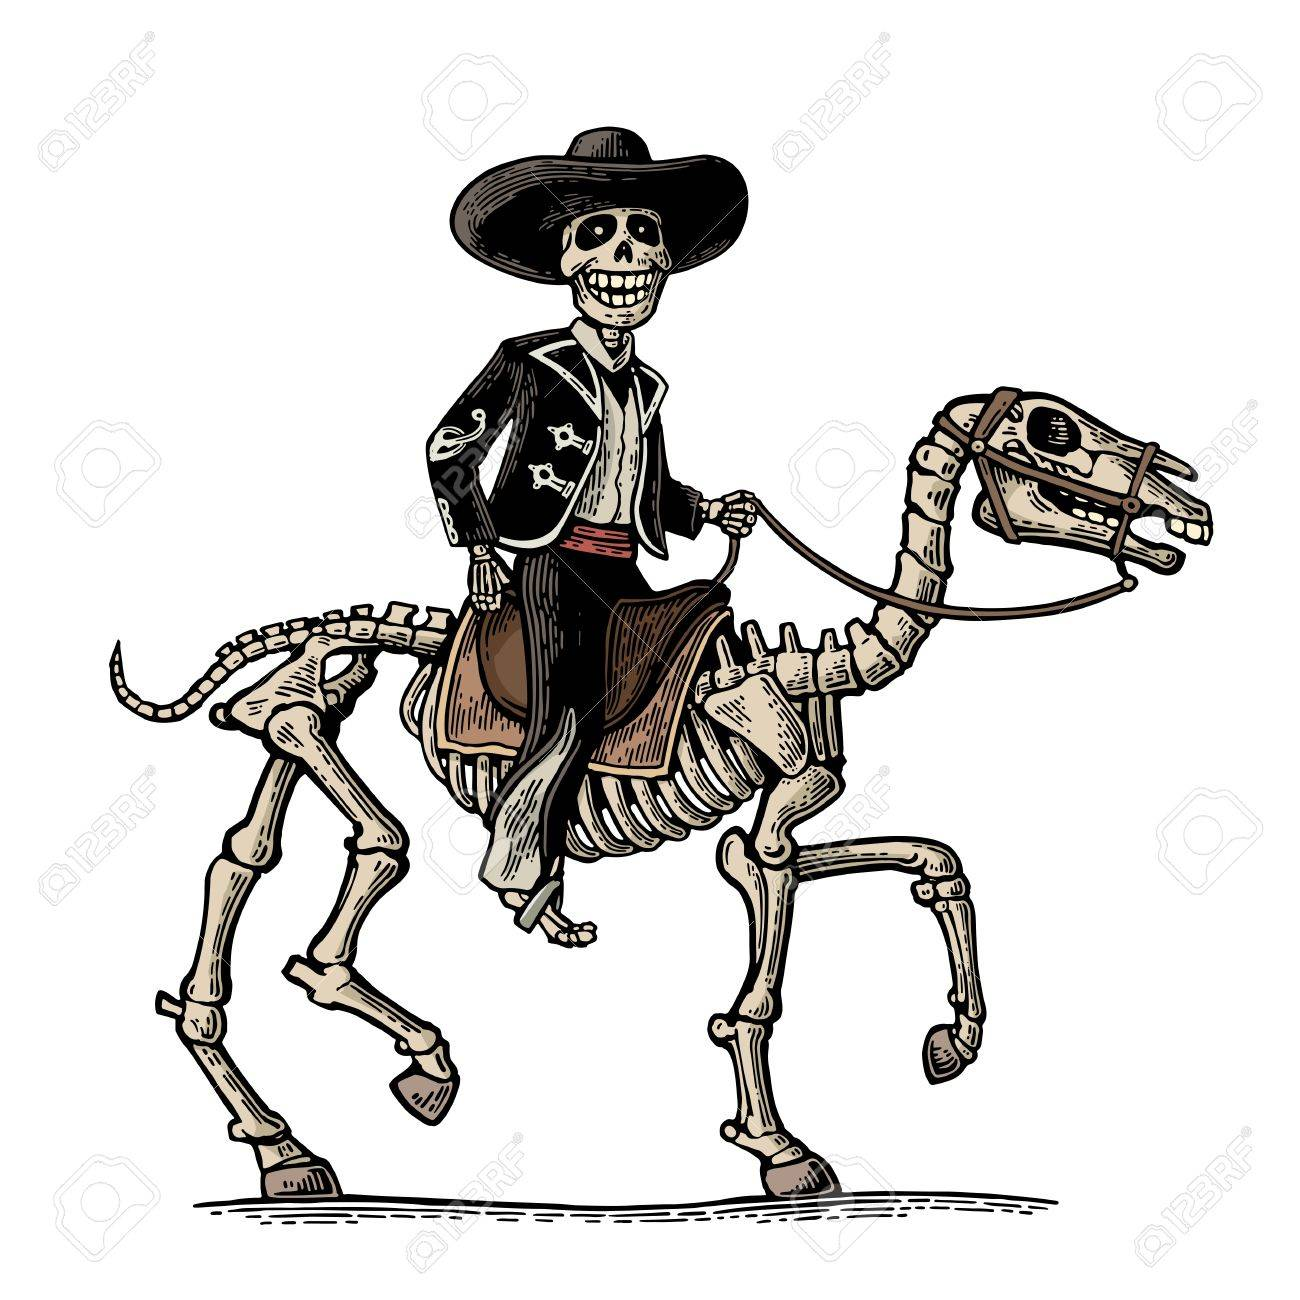 1300x1300 Rider In The Mexican Man National Costumes Galloping On Skeleton